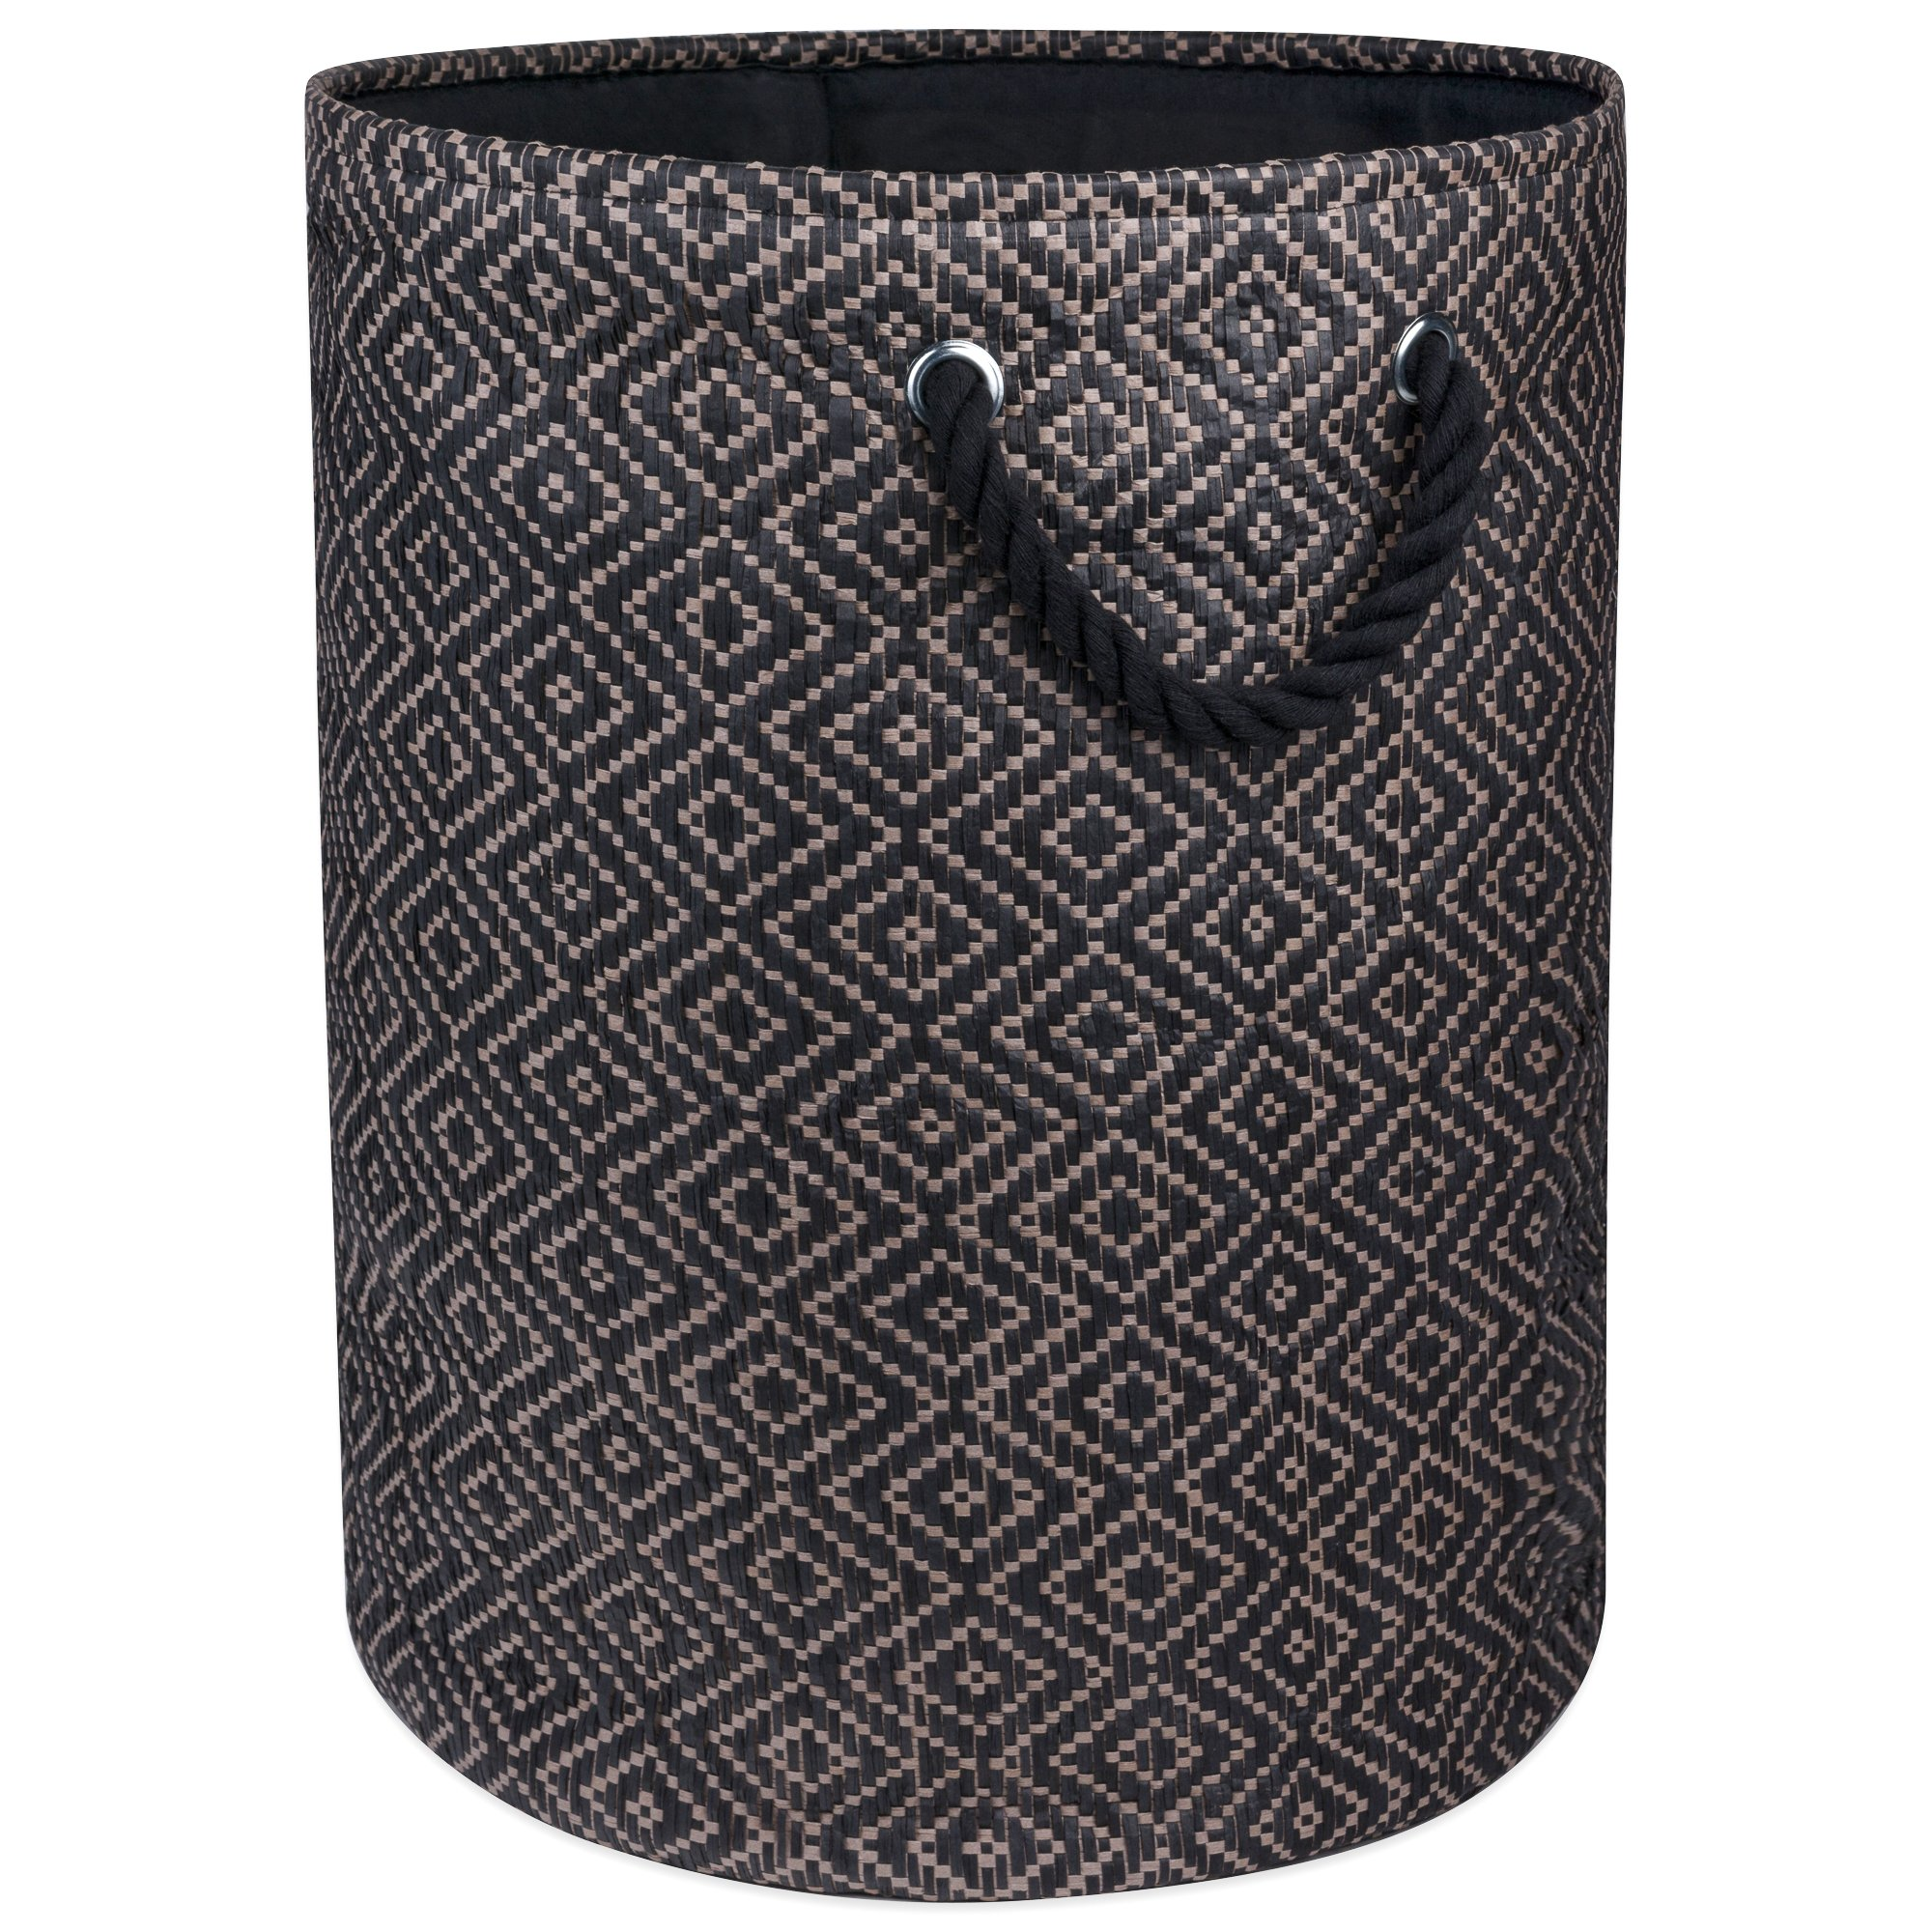 "DII Woven Paper Basket or Bin, Collapsible & Convenient Home Organization Solution for Bedroom, Bathroom, Dorm or Laundry (Medium Round - 14x17""), Brown & Black Diamond Basketweave"